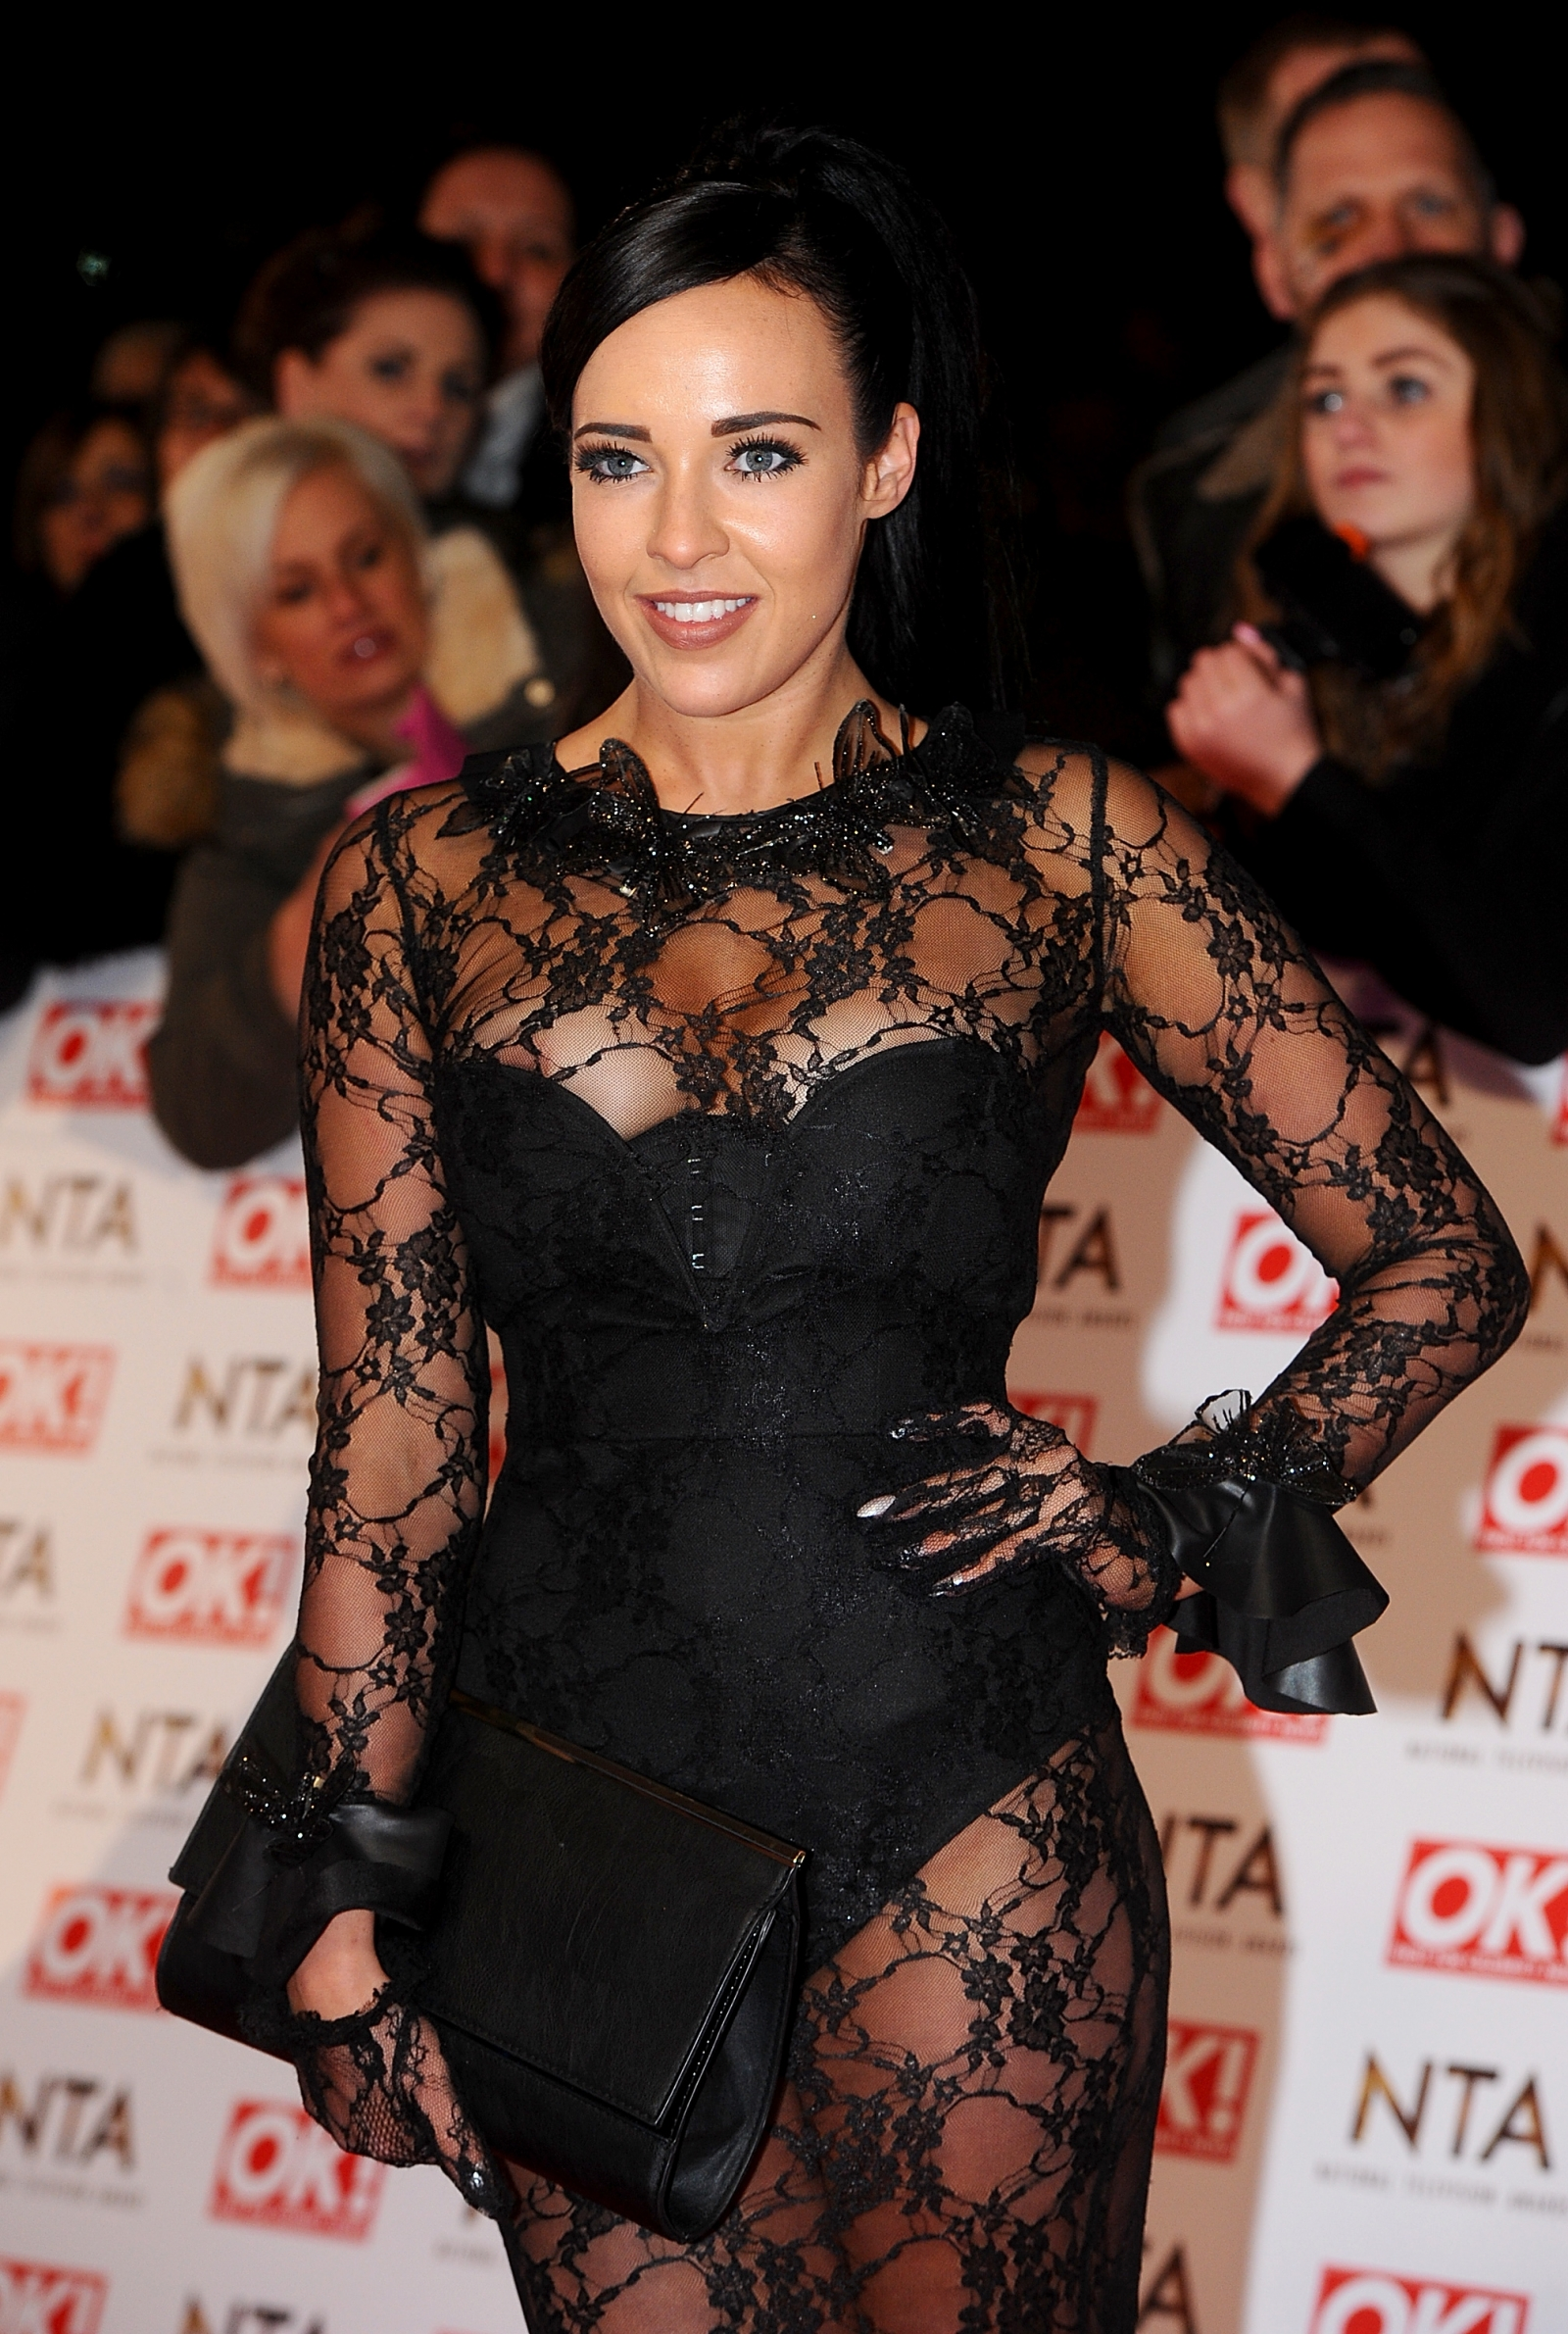 Hollyoaks actress Stephanie Davis